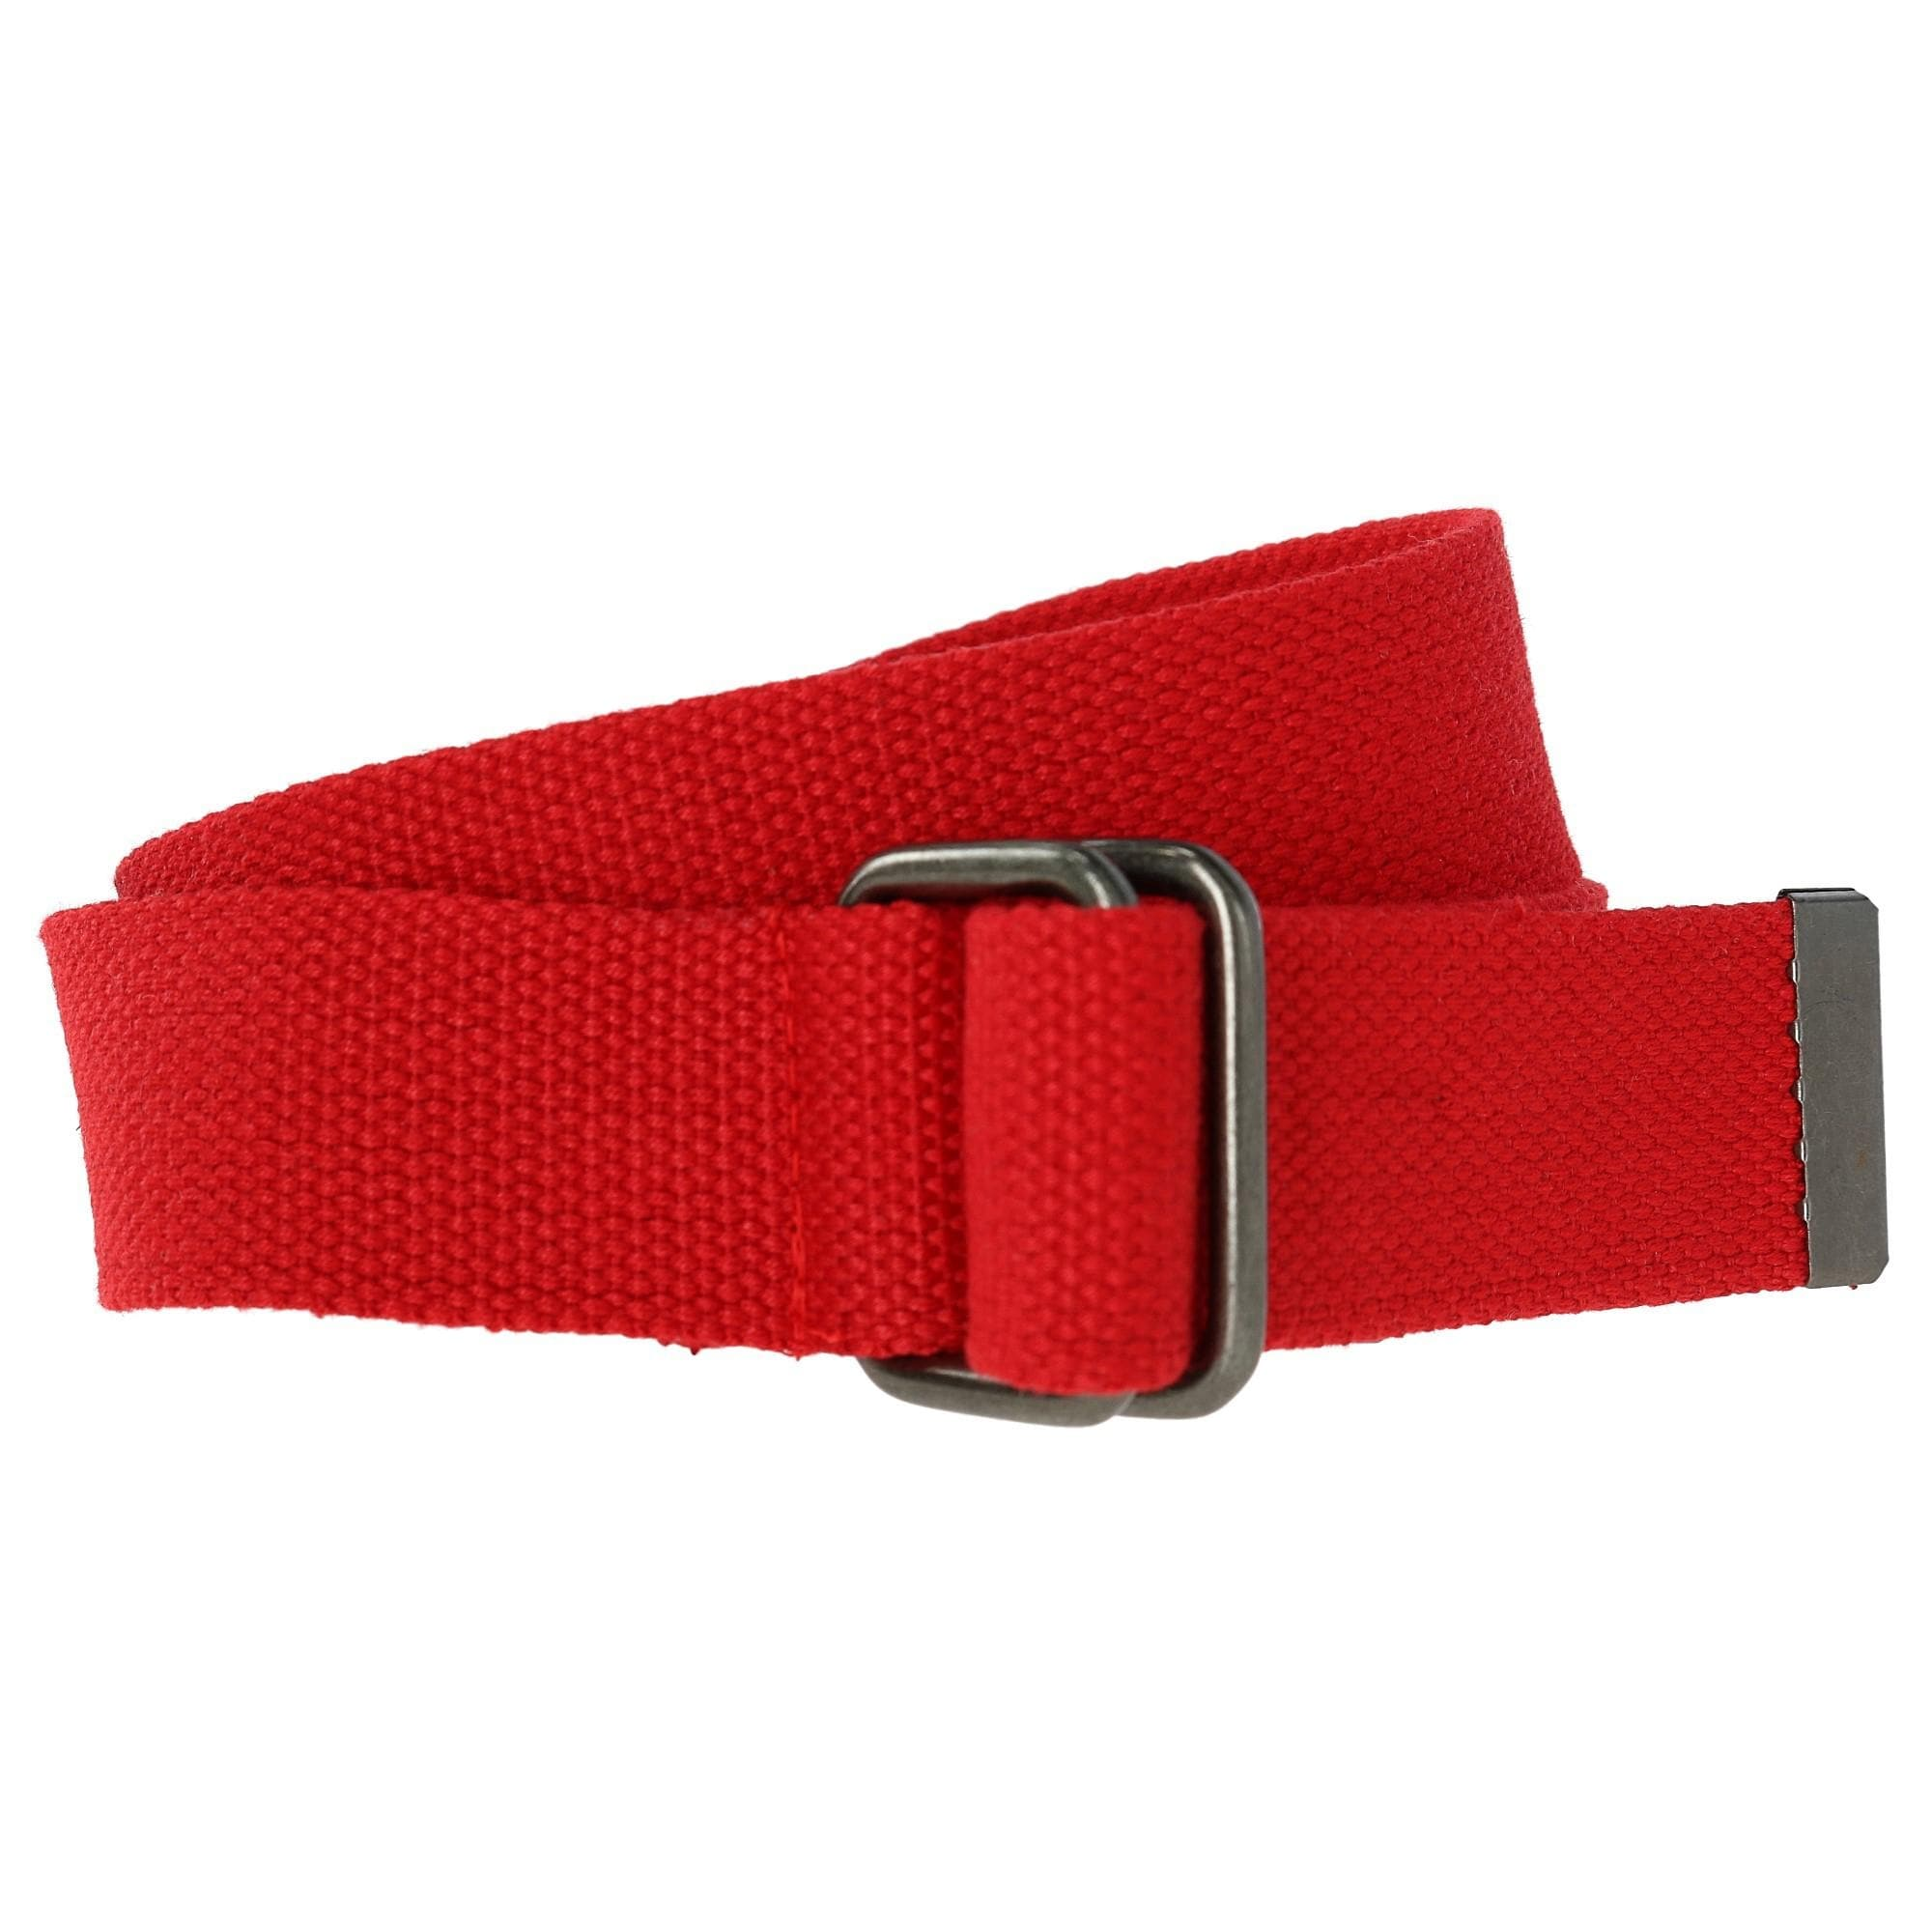 Mens Canvas Belt RED Double D Ring Buckle Womens No Hole X Large Size